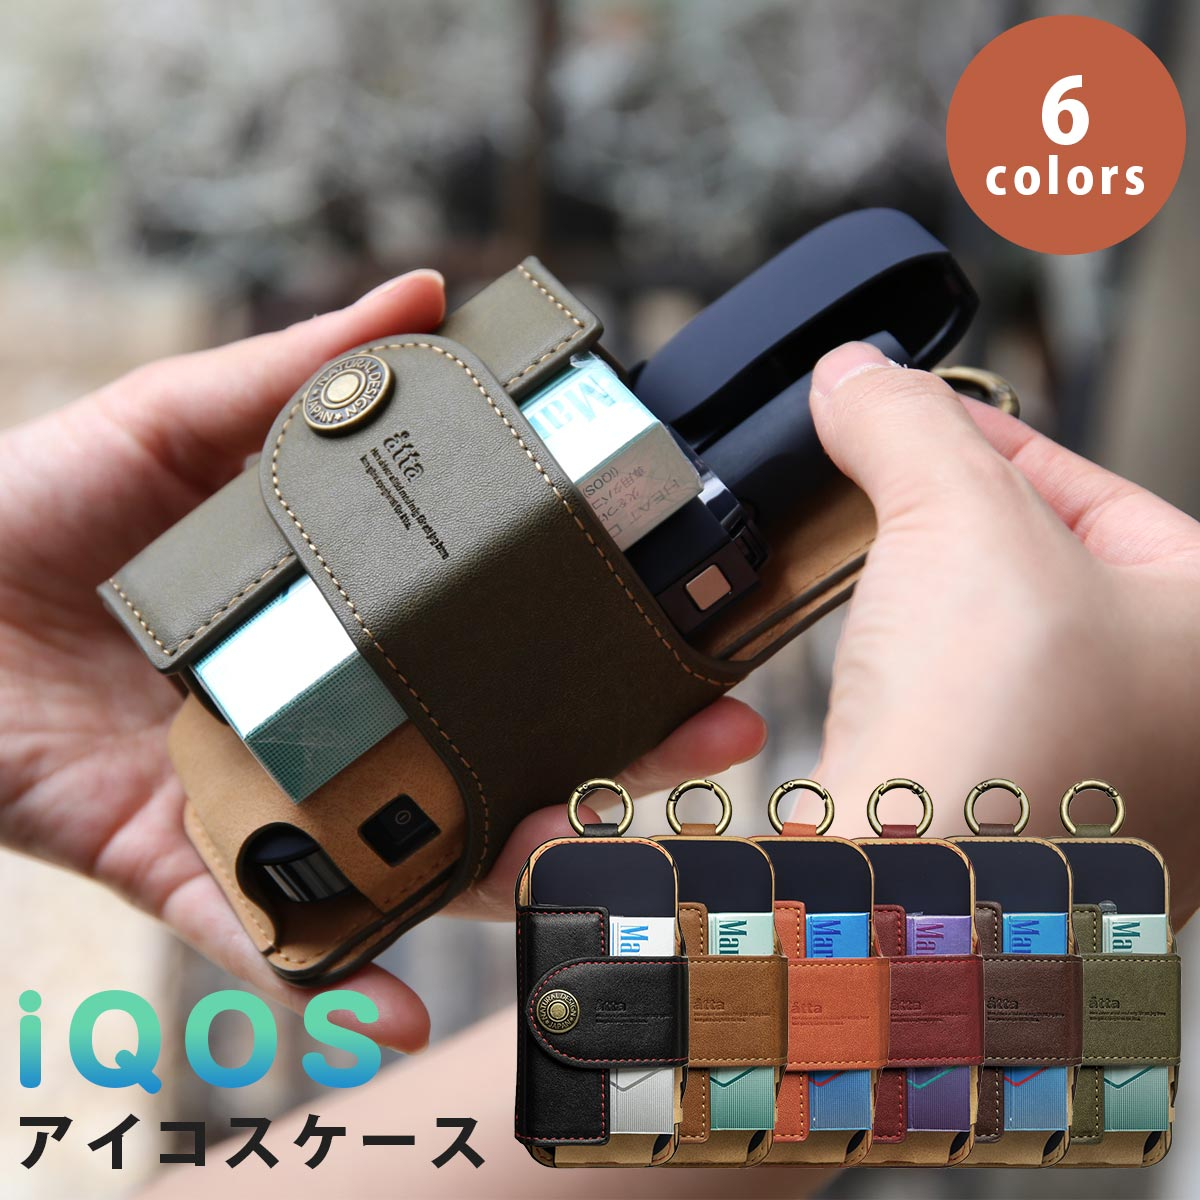 Aiko's iqos case iqos 2 4 plus cover leather storing Aiko's case electron  cigarette natural design NATURAL design SMOKE EASY